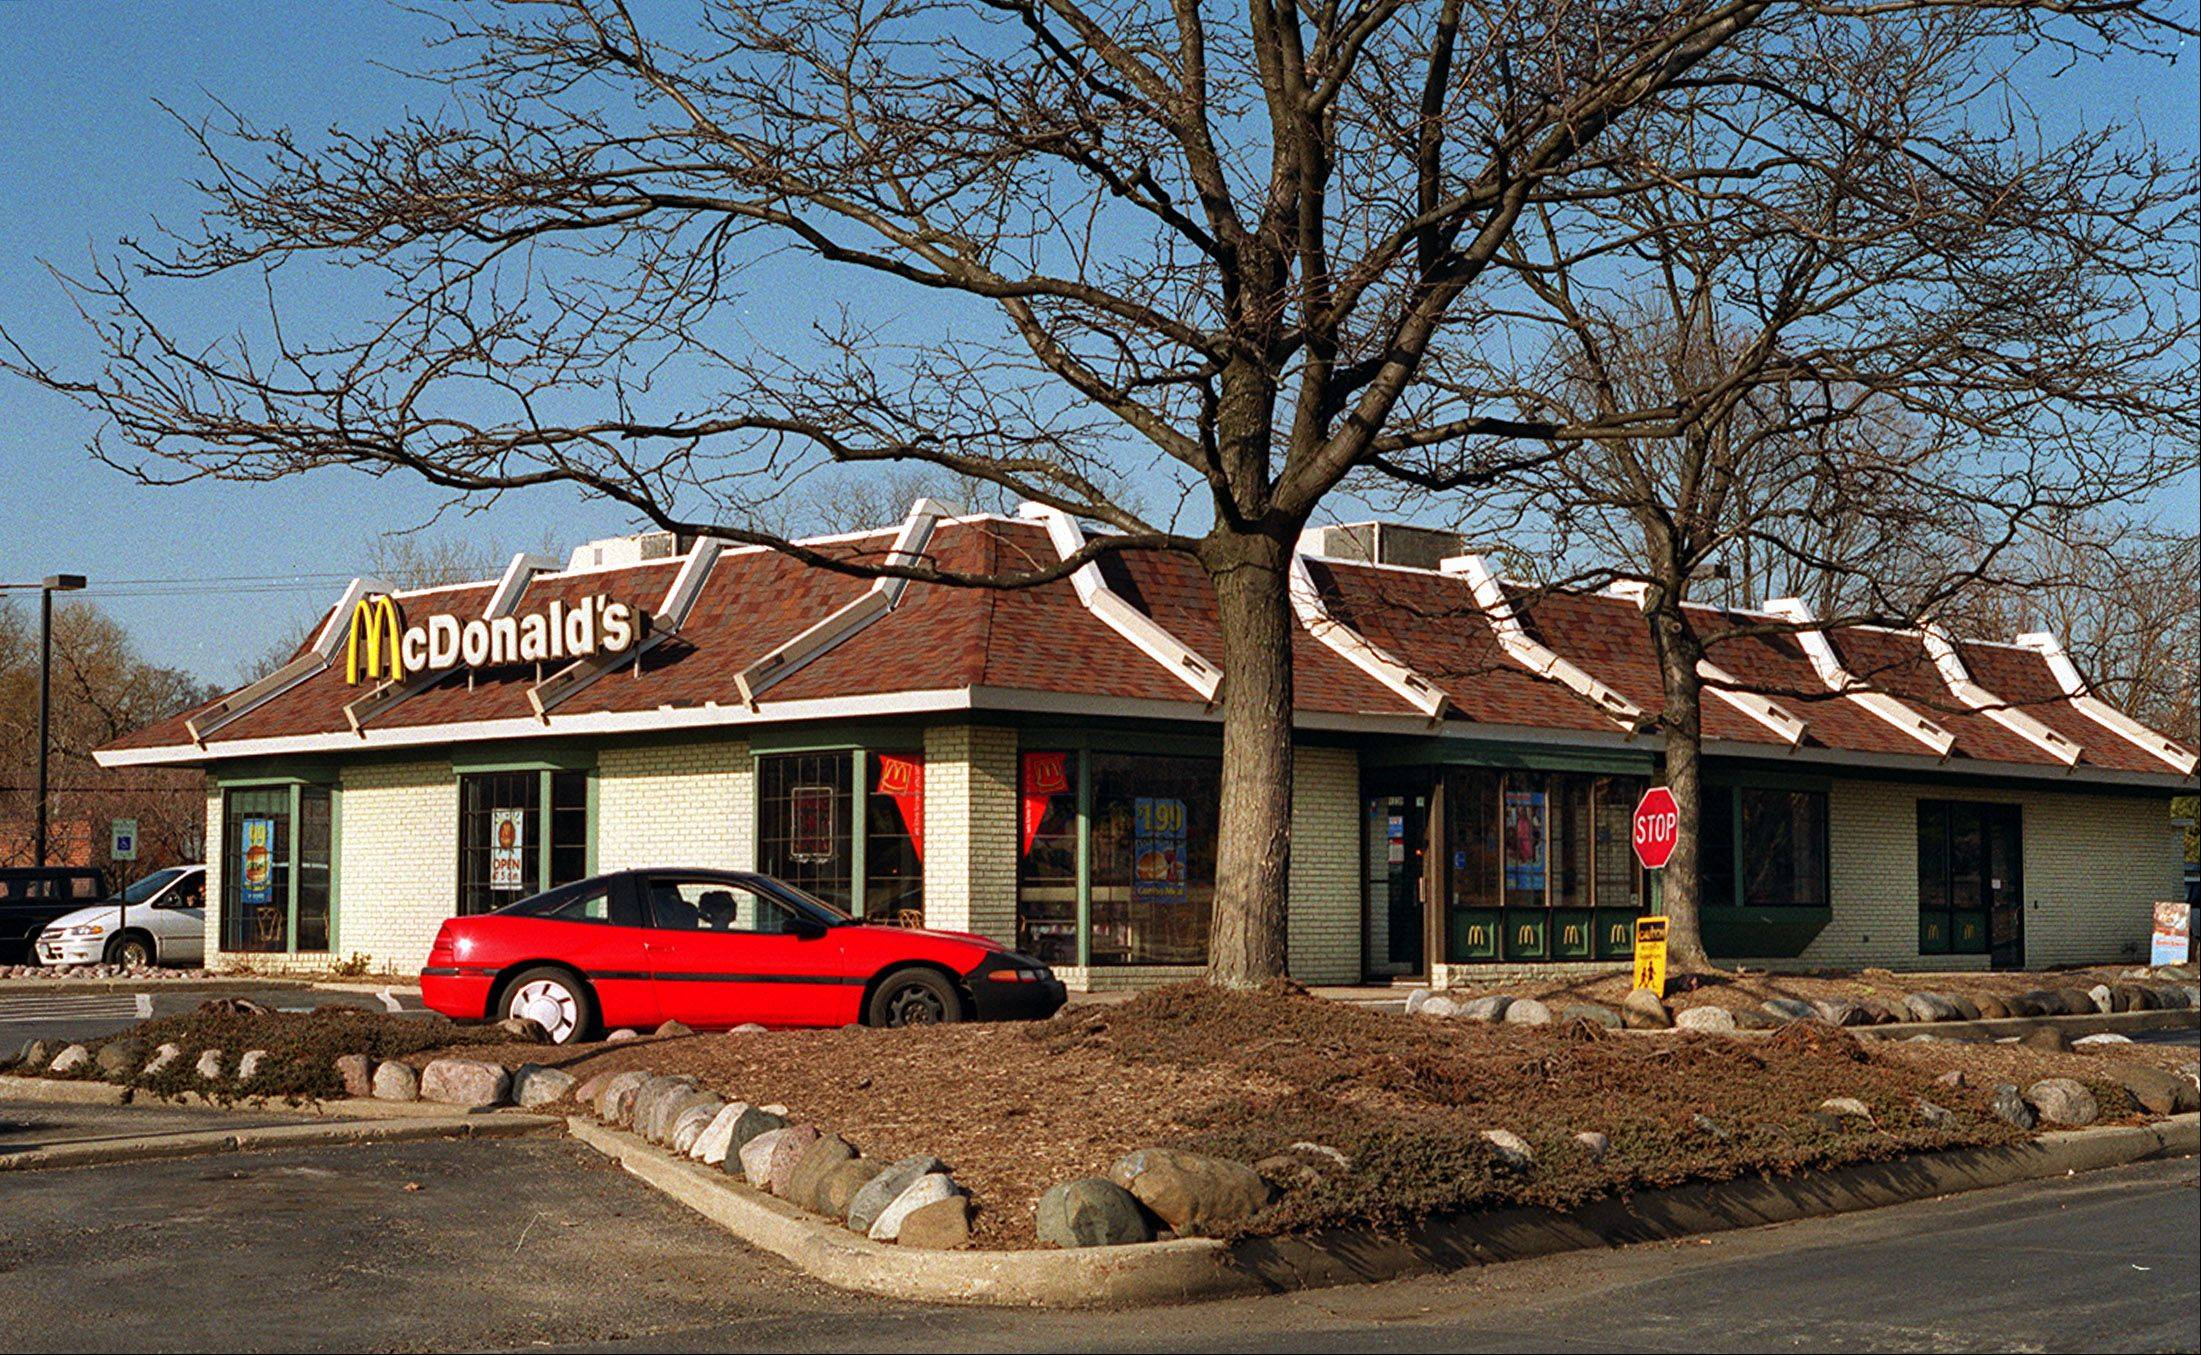 Oak Brook-based McDonald's says a key sales figure slipped again in April, with the world's biggest hamburger chain citing challenging economic conditions around the globe.